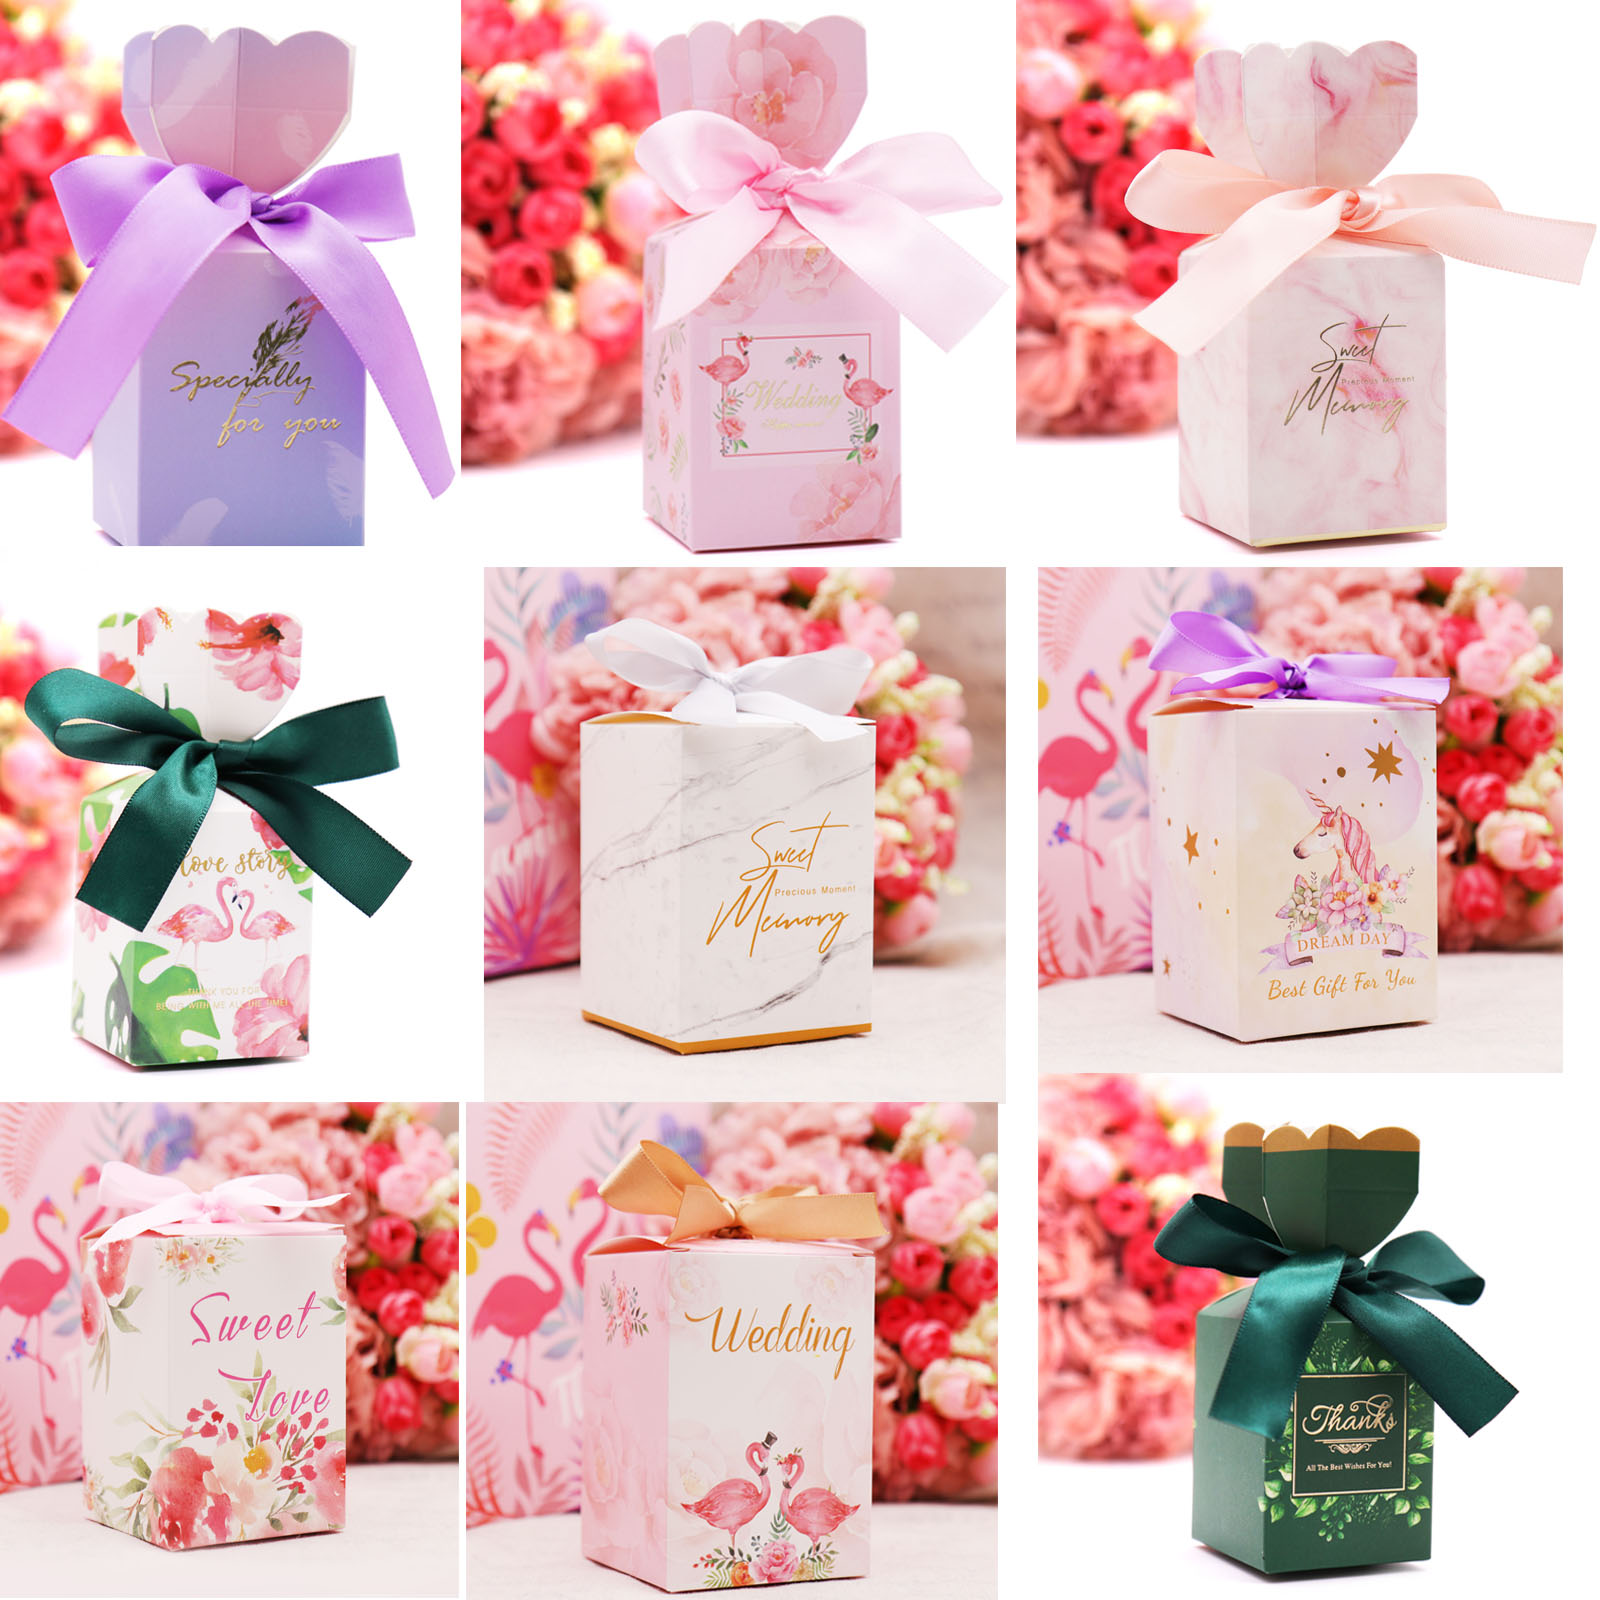 Paper Romantic Candy Box Vase Style Unicorn Flamingo Gift Box With Ribbon For DIY Wedding Party Decor Guests Return Gift